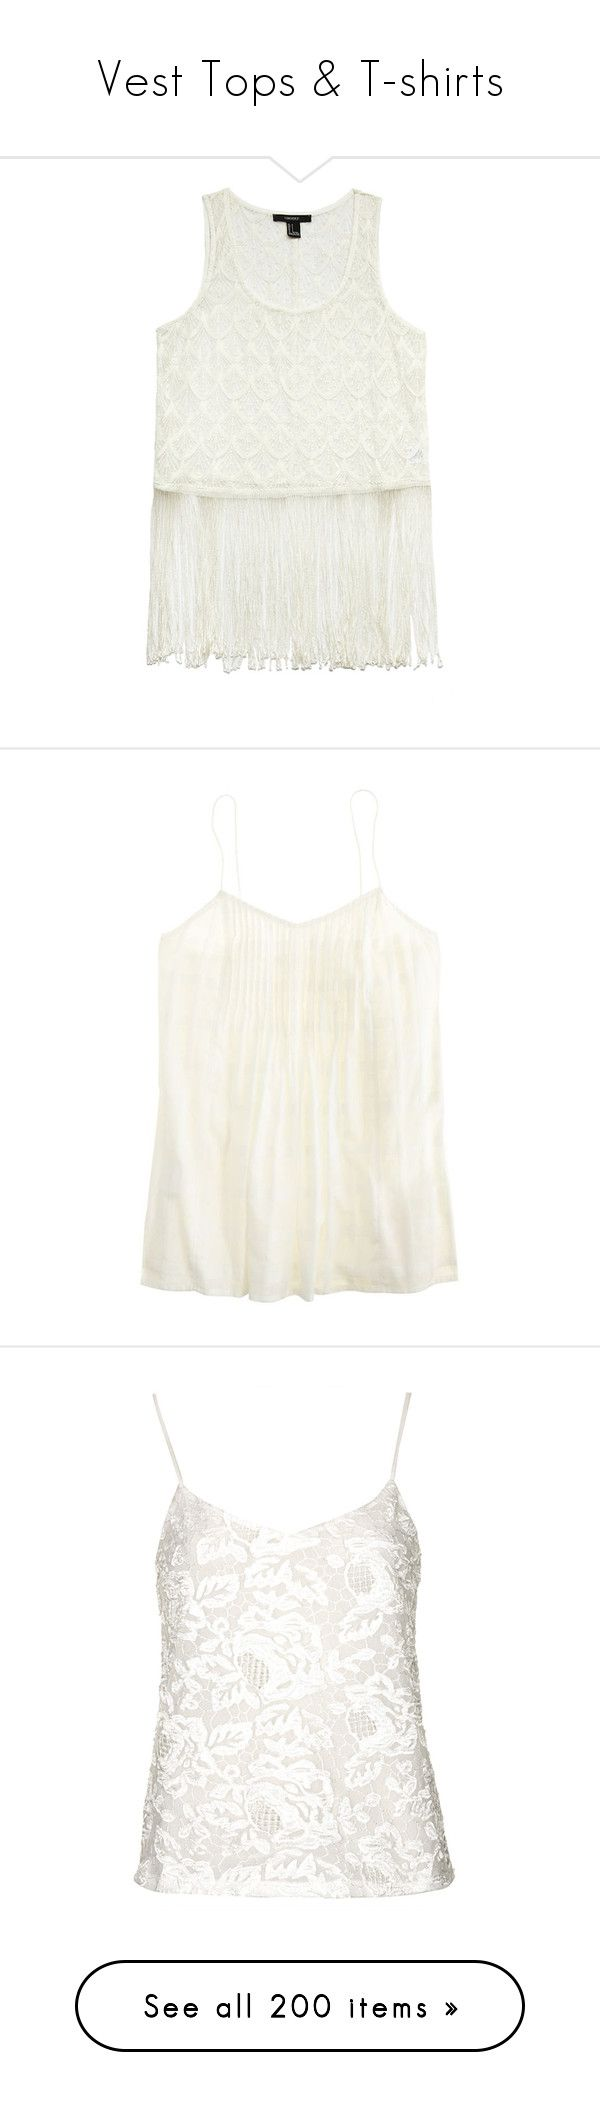 """""""Vest Tops & T-shirts"""" by chell-p ❤ liked on Polyvore featuring tops, shirts, white sleeveless shirt, scallop top, pattern shirt, fringe shirts, white fringe shirt, j.crew, tanks and white cami top"""